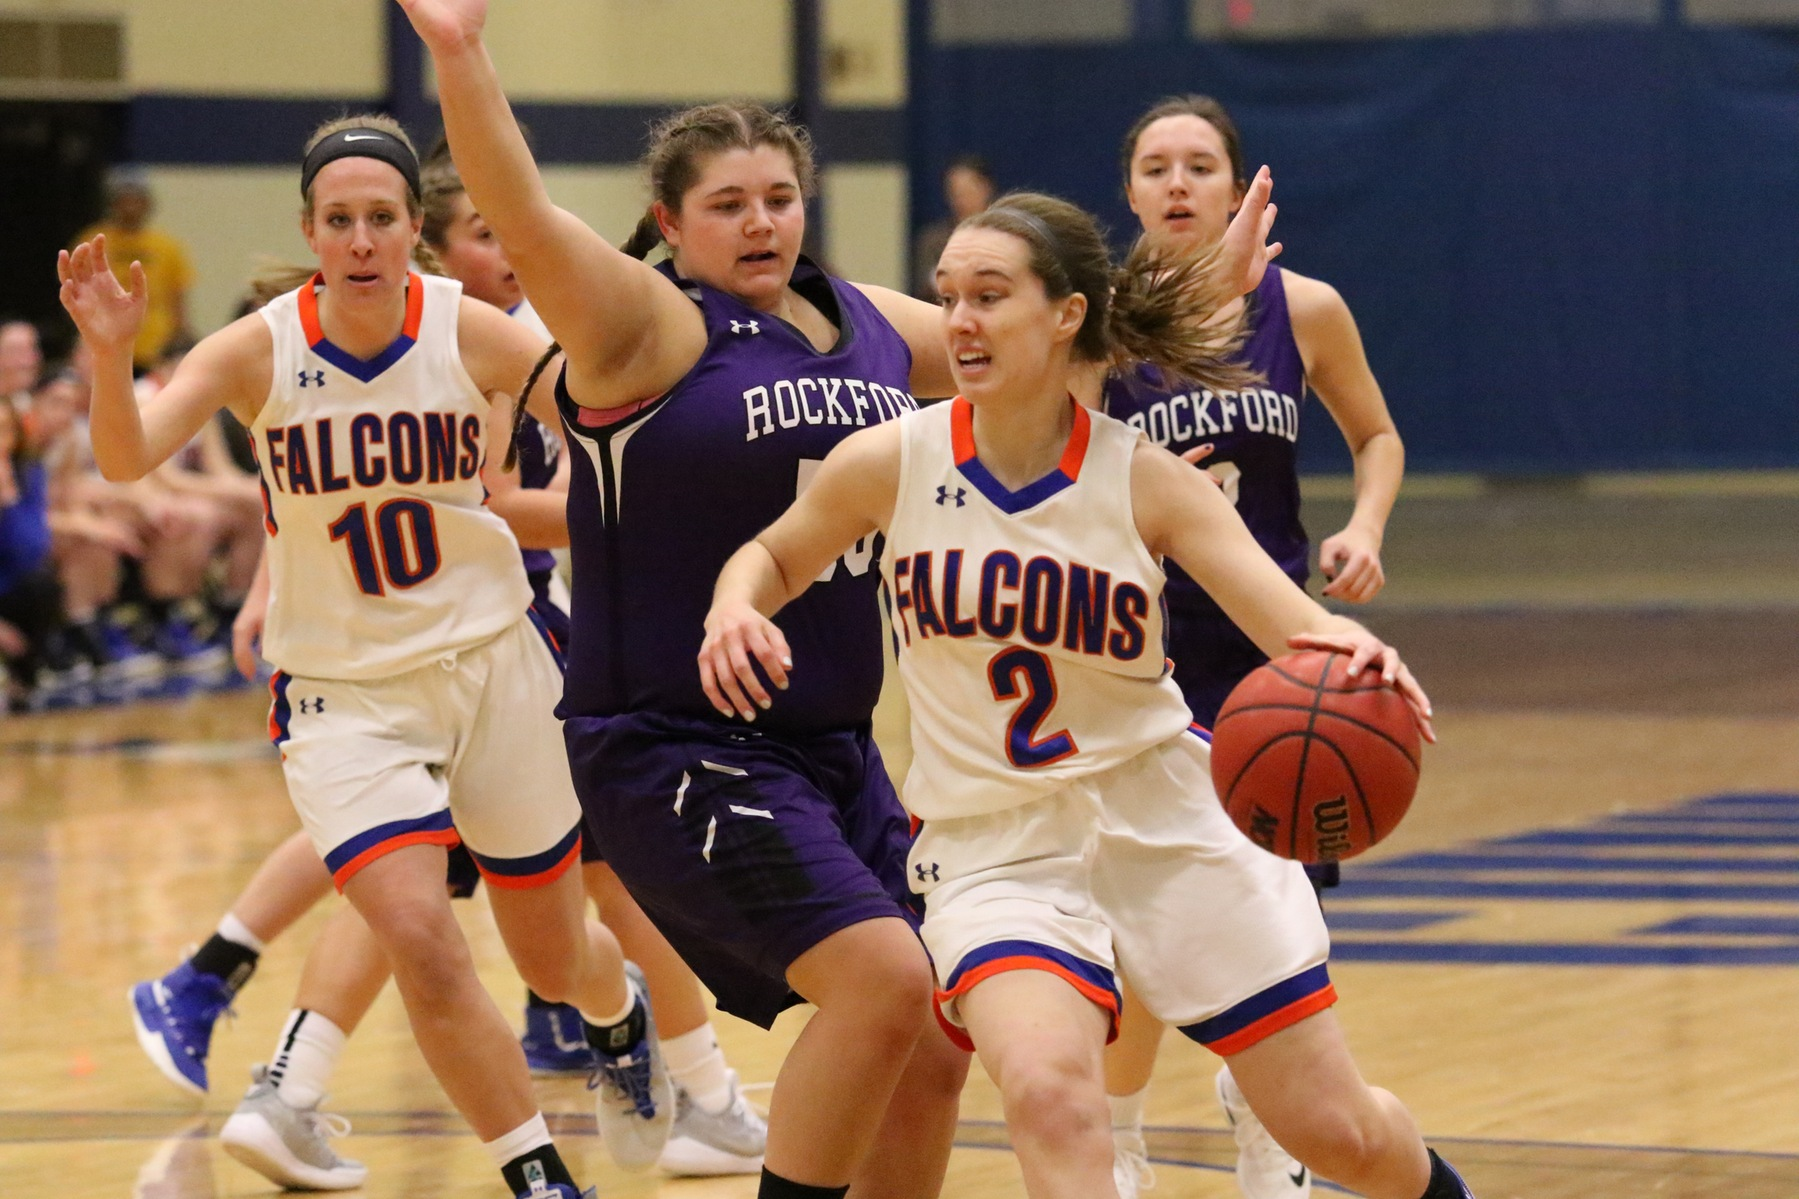 Women's Basketball rams Rockford, wins eighth straight